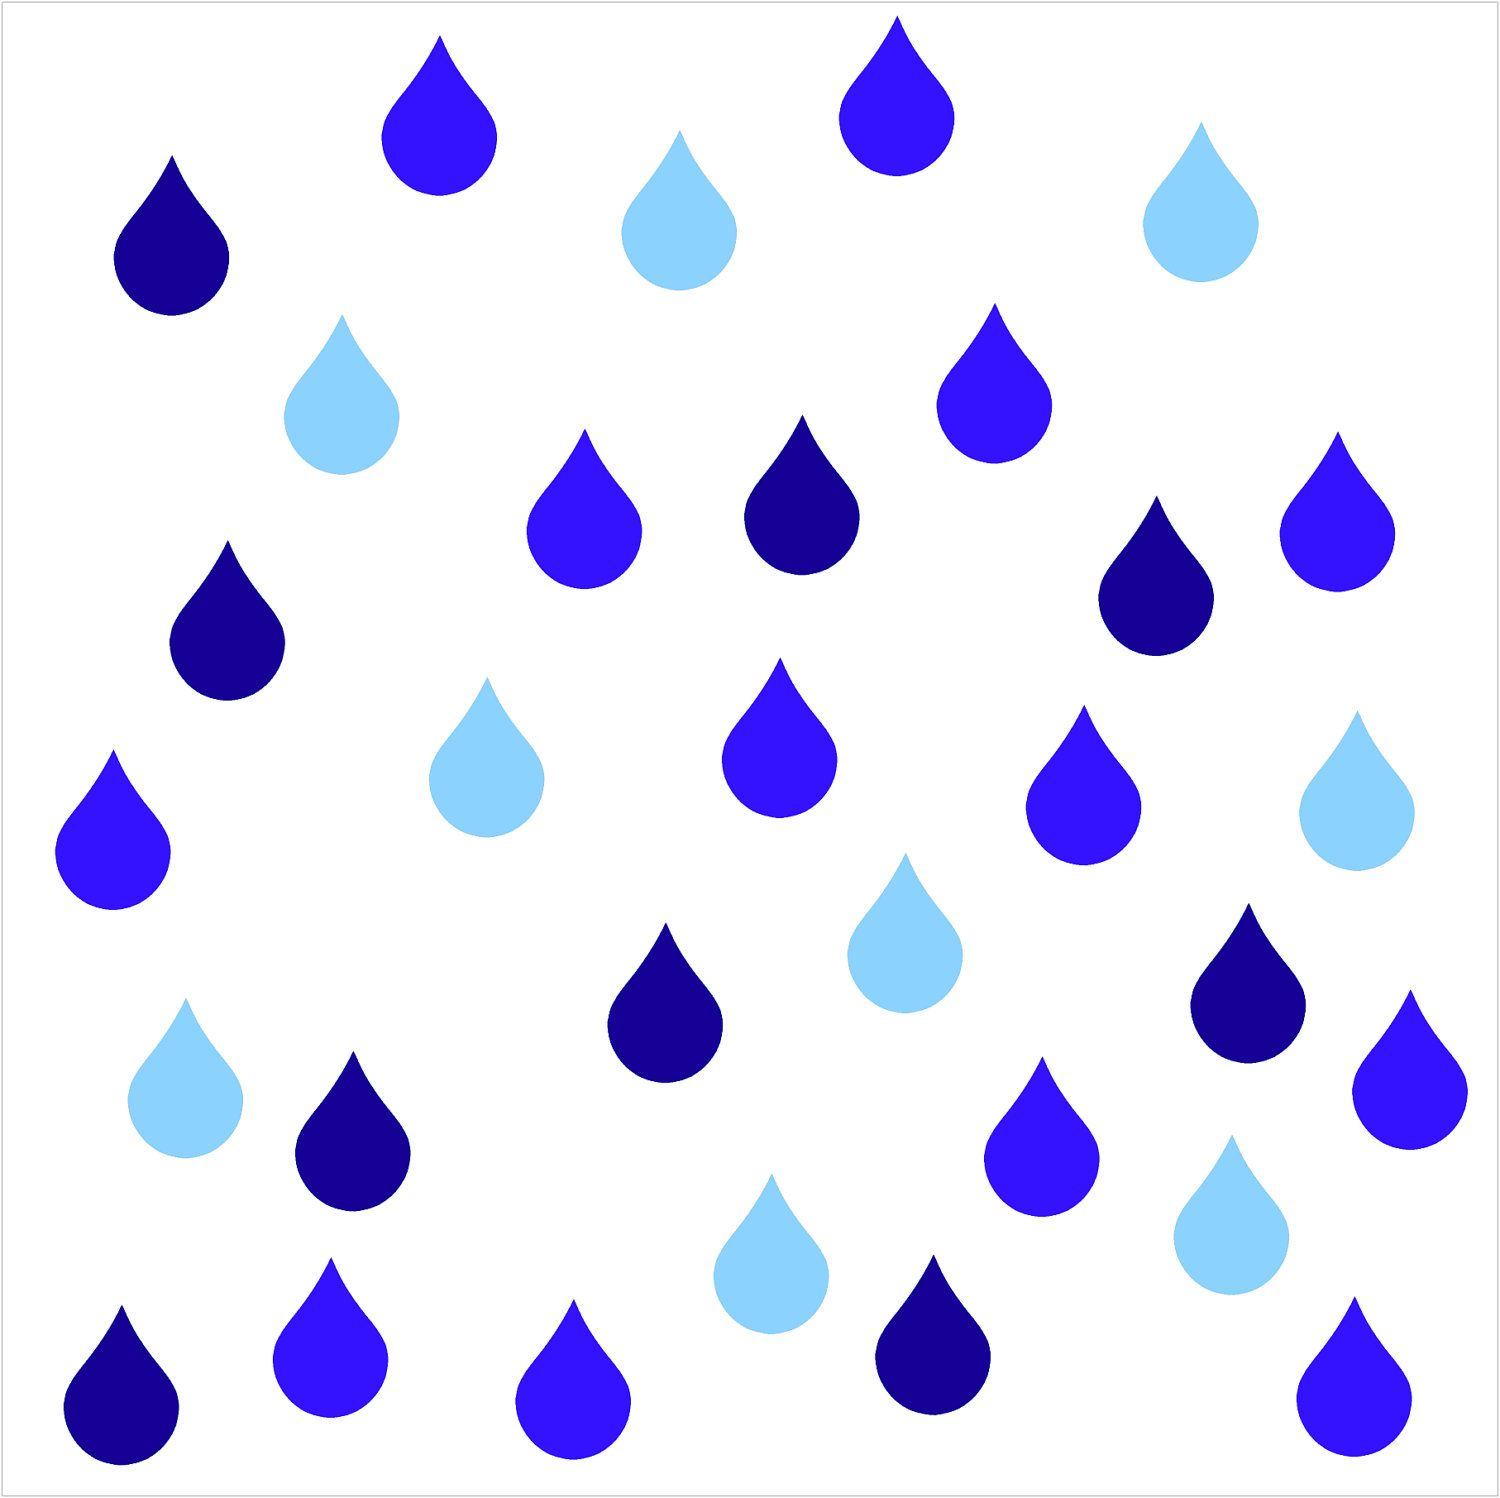 Raindrop clipart rain droplet. Pictures of raindrops best